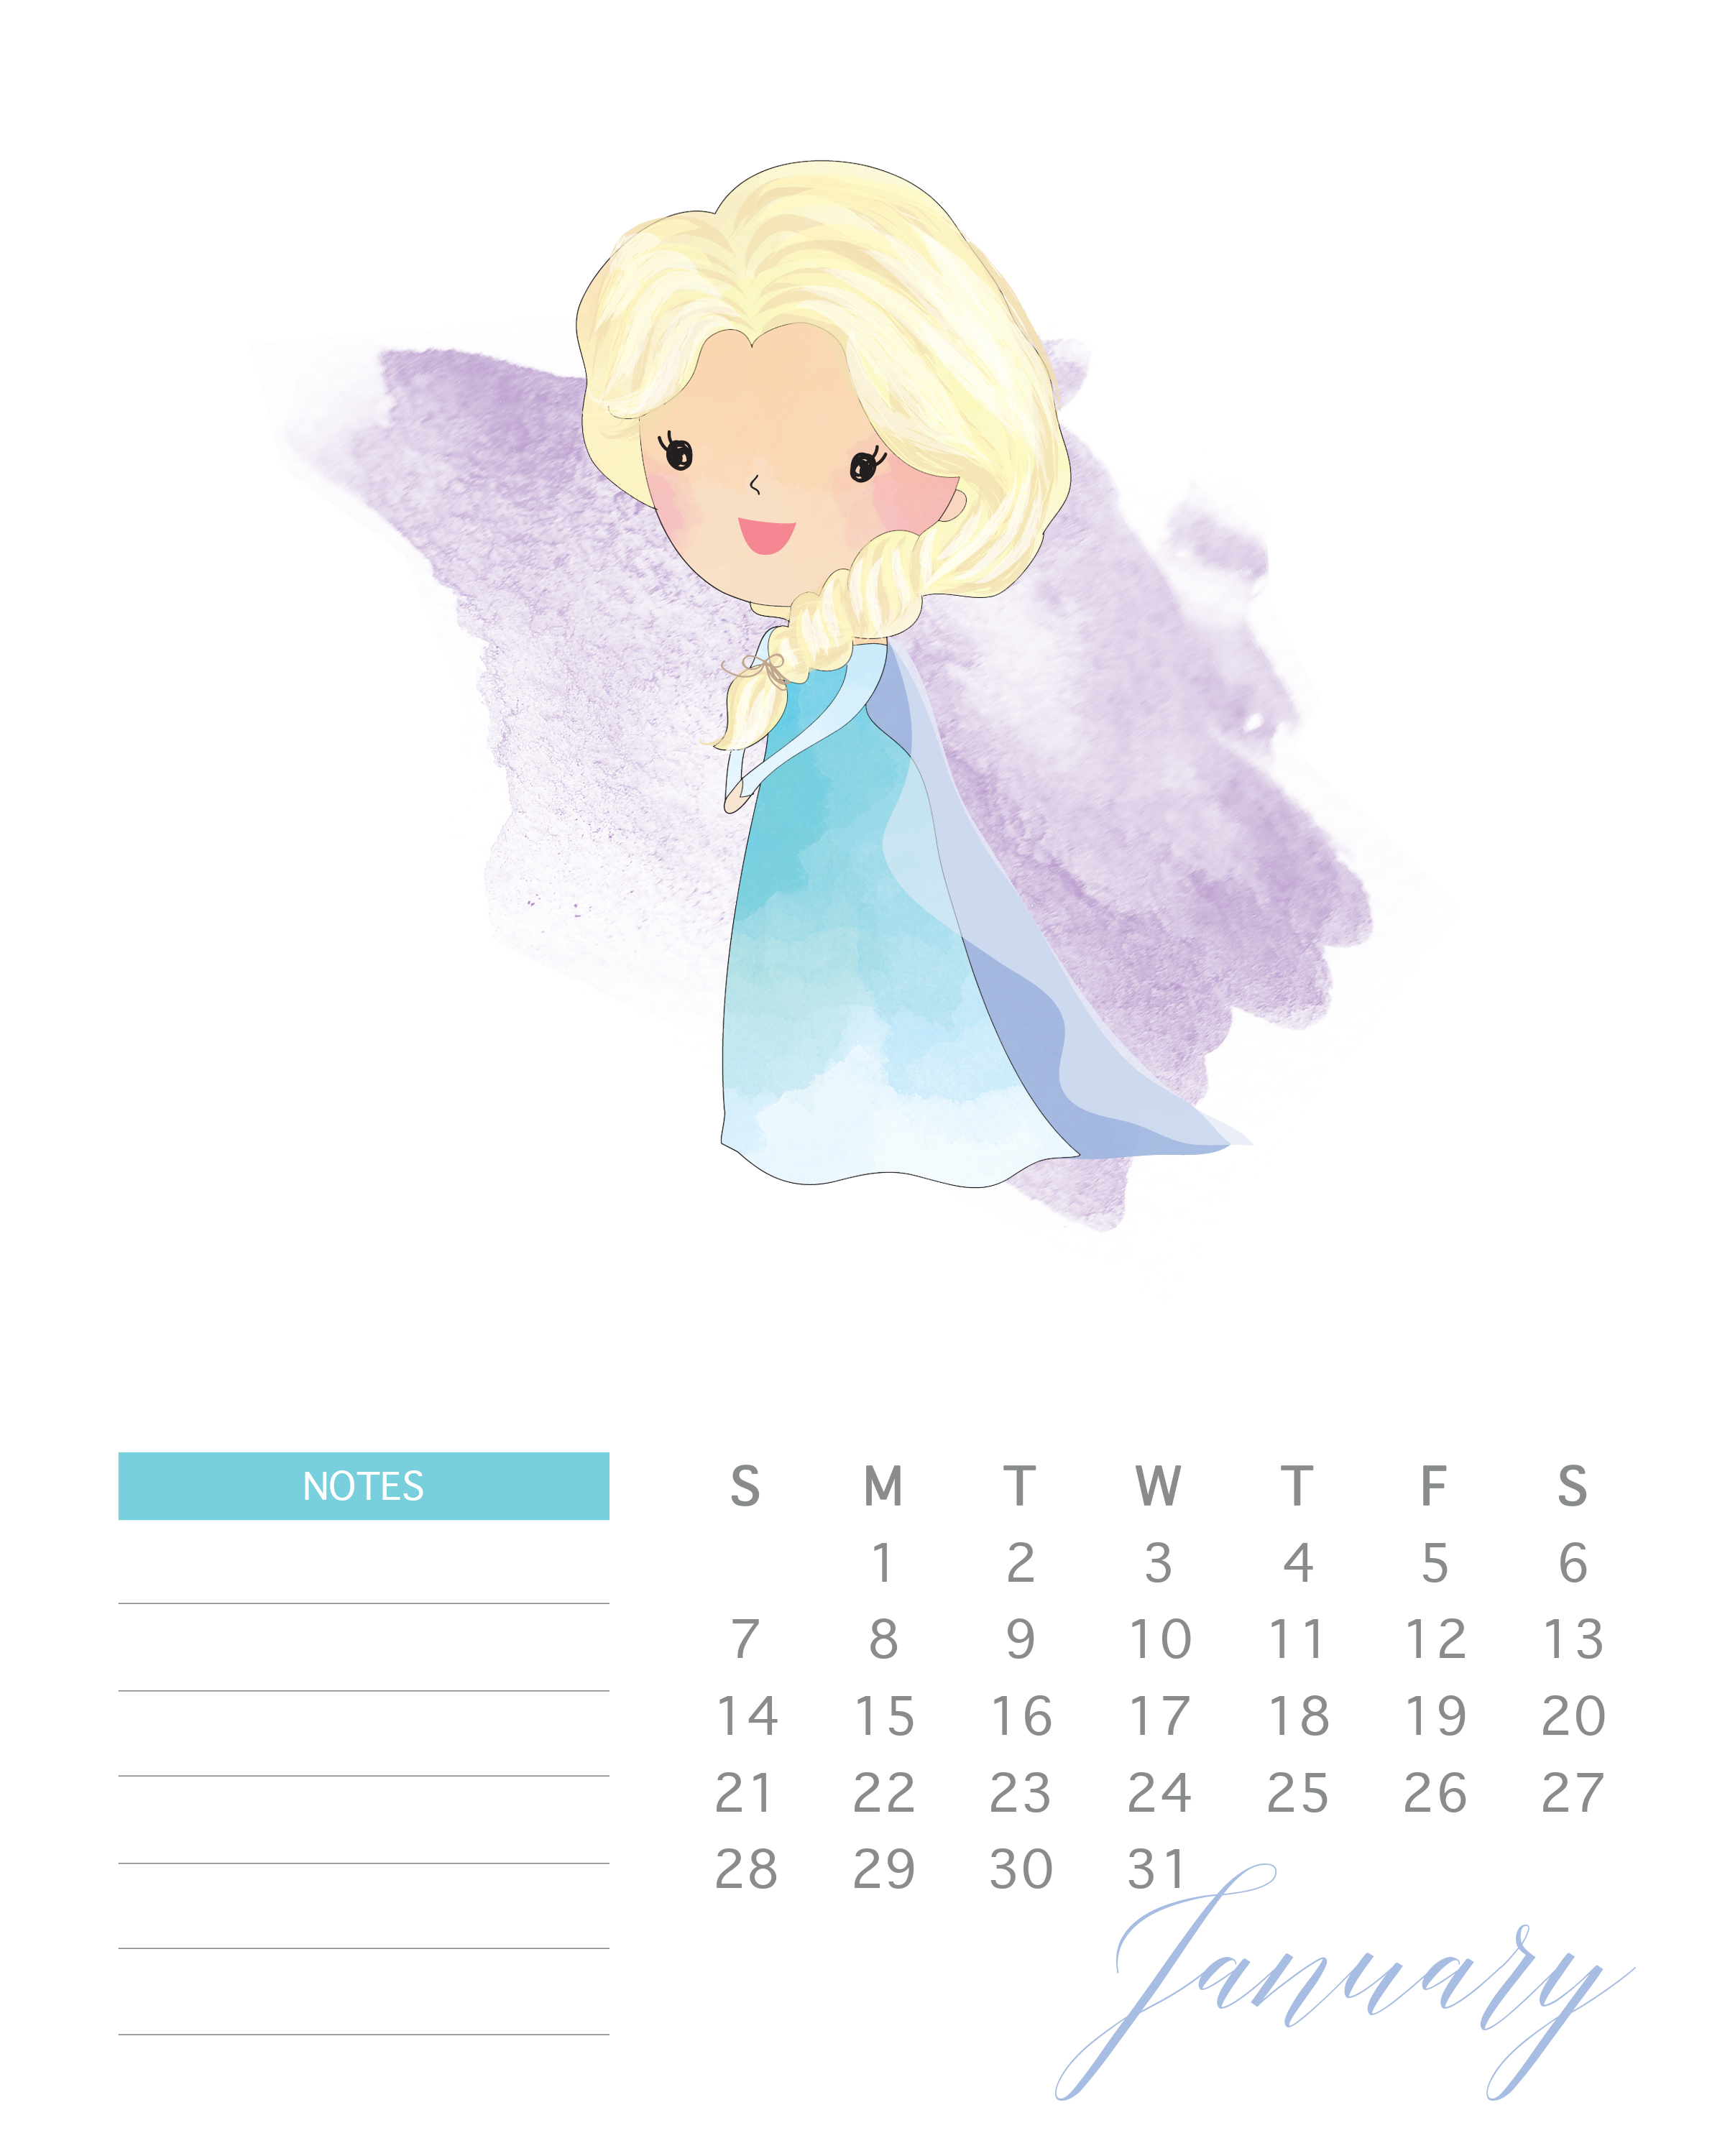 Elsa is the featured princess of this free 2018 watercolor princess calendar